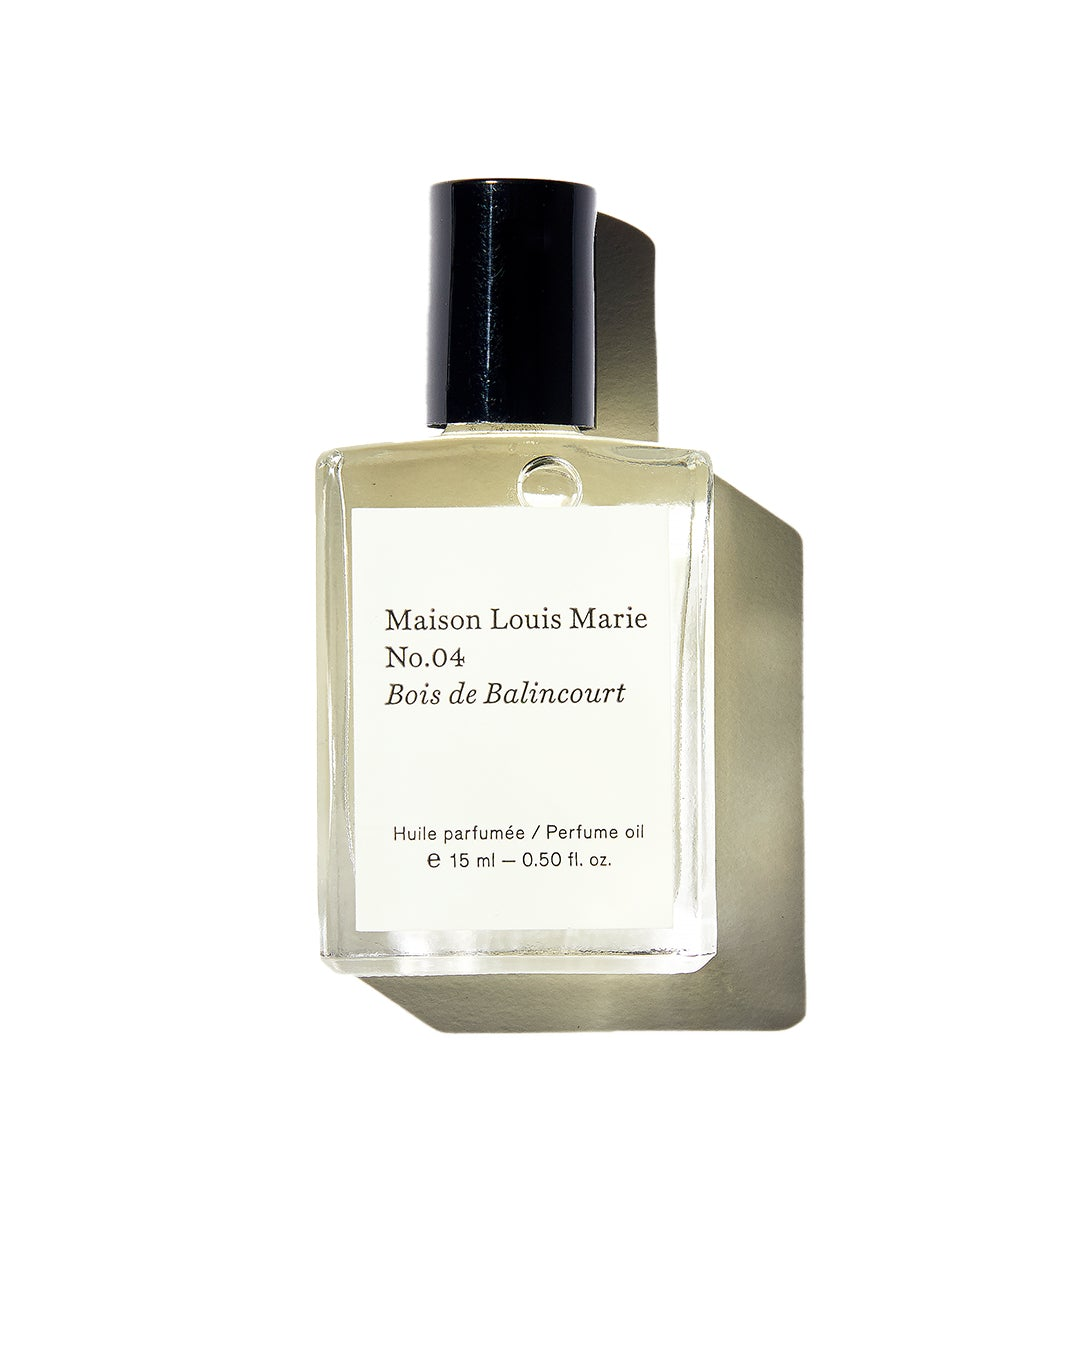 Glass Maison Louis Marie perfume bottle with white label and black lid on white background